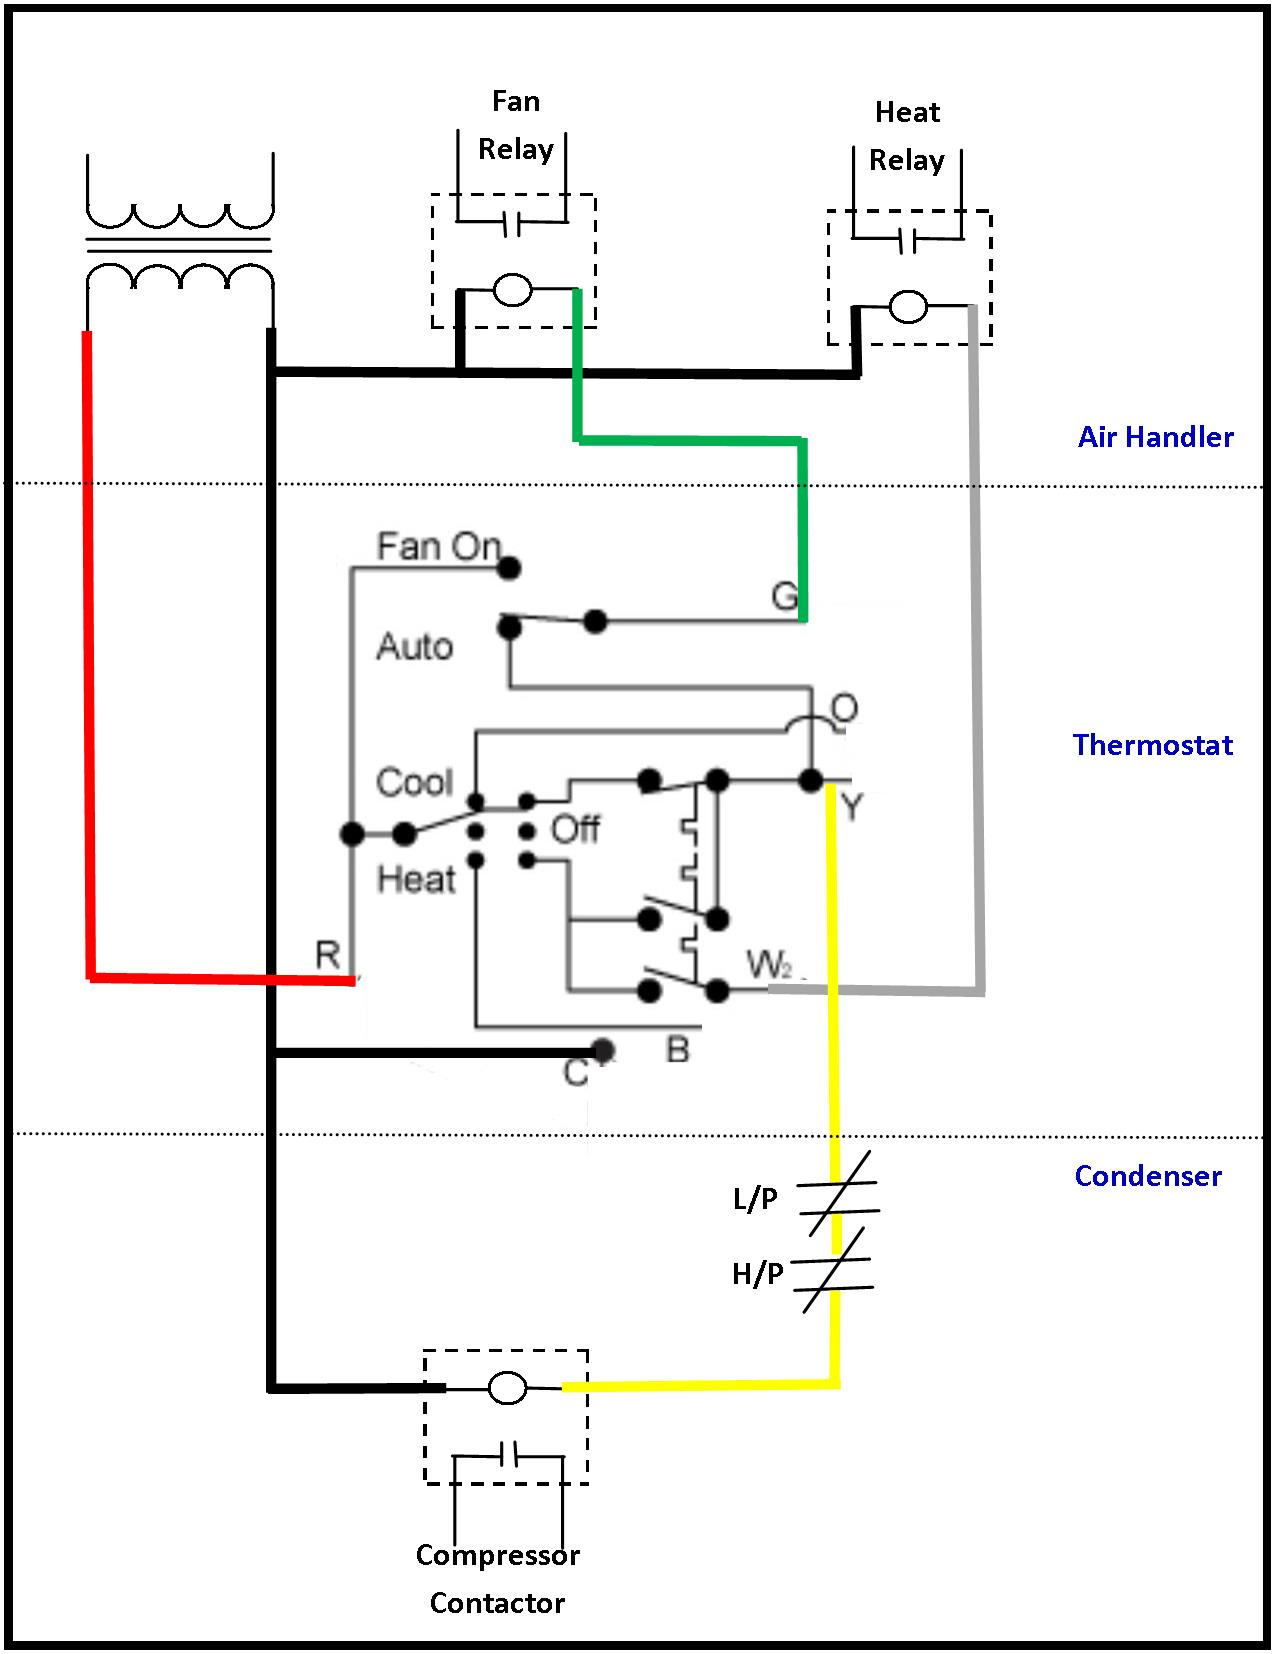 AC low voltage wiring diagram1 hvac wire diagram hvac diagrams schematics \u2022 wiring diagrams j hvac fan relay diagram at reclaimingppi.co